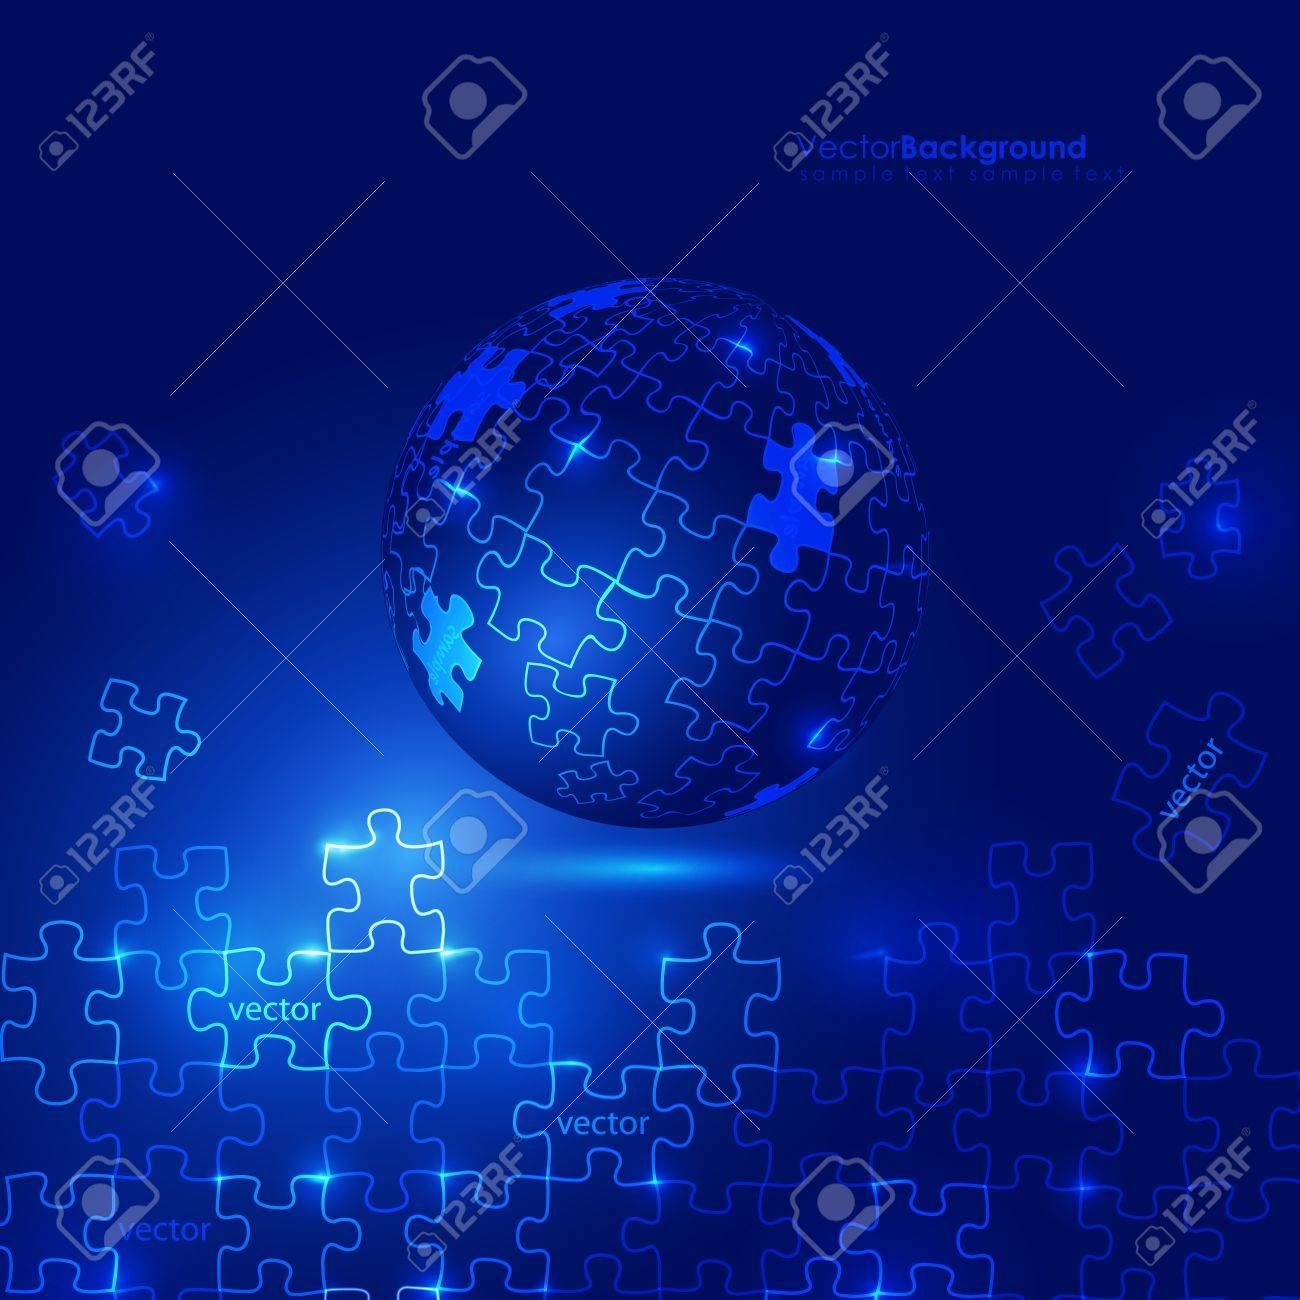 Glowing Blue 3d Globe Puzzle Vector Background Stock Vector - 9336522